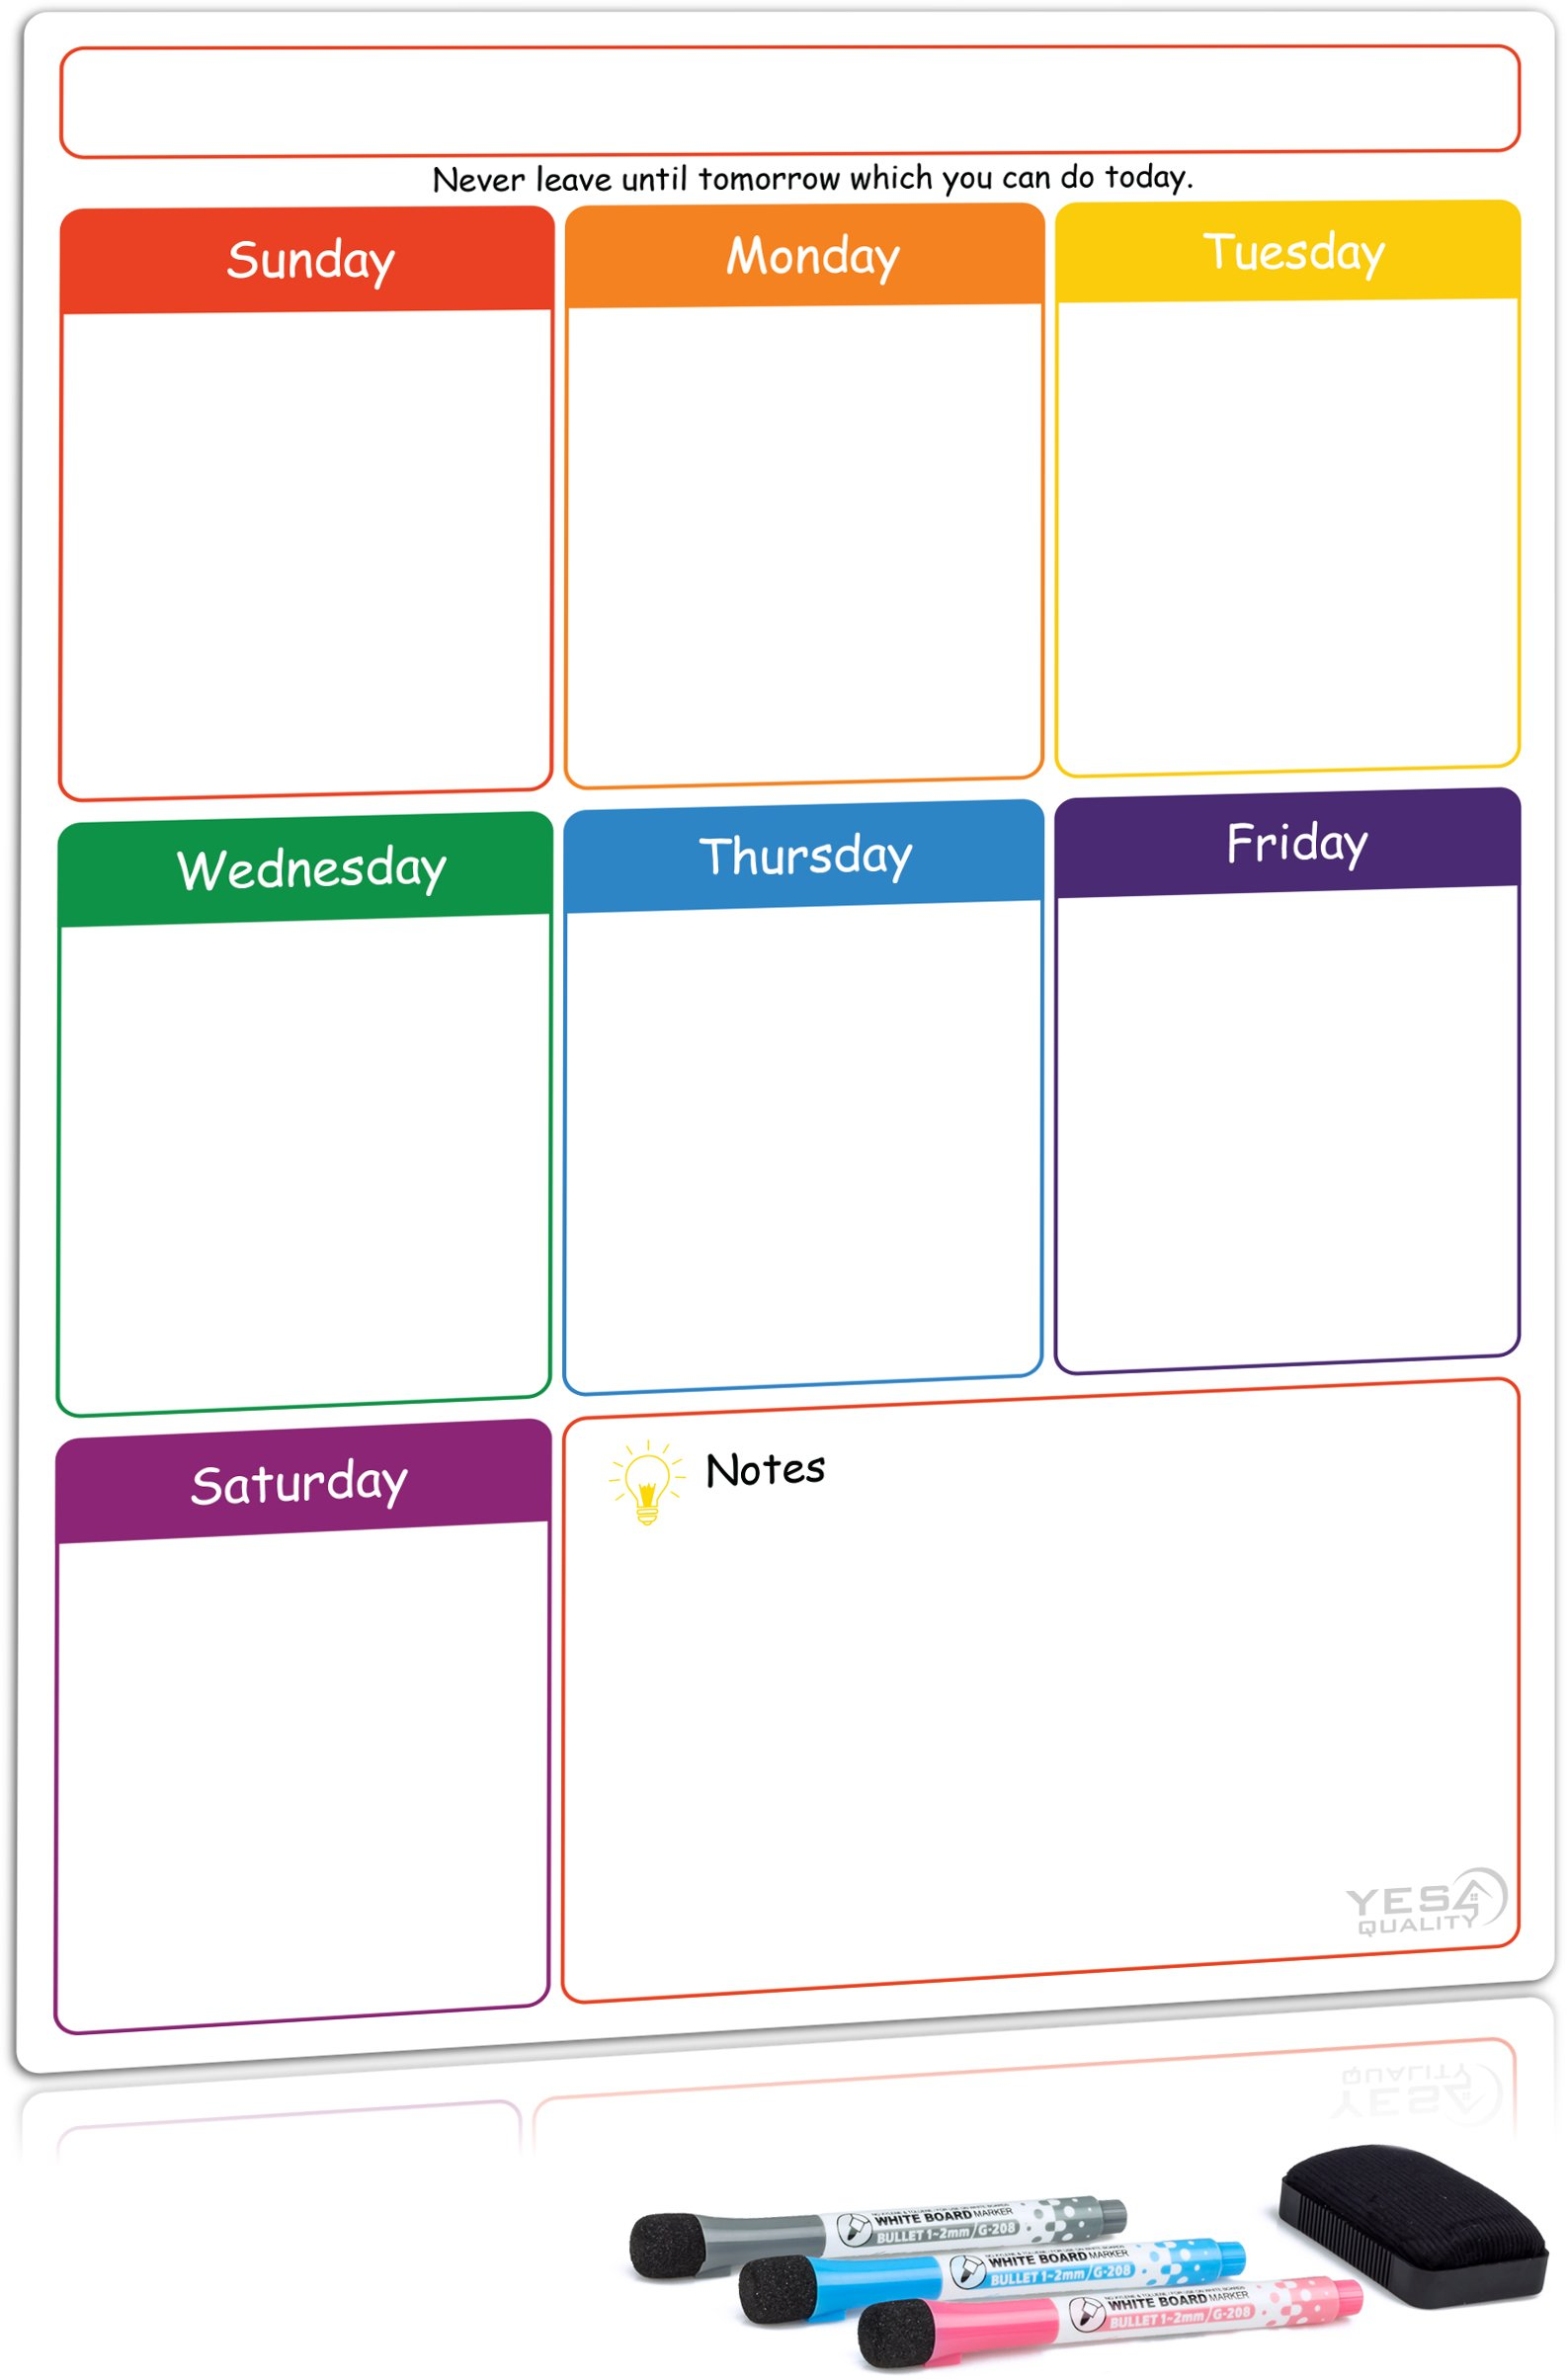 Magnetic Dry Erase Weekly Planner Board for Refrigerator by Yes4Quality | Weekly Whiteboard Calendar w/Stain Resistant Technology | for Family, Home, Office, Fridge Use | 3 Markers & Eraser Included